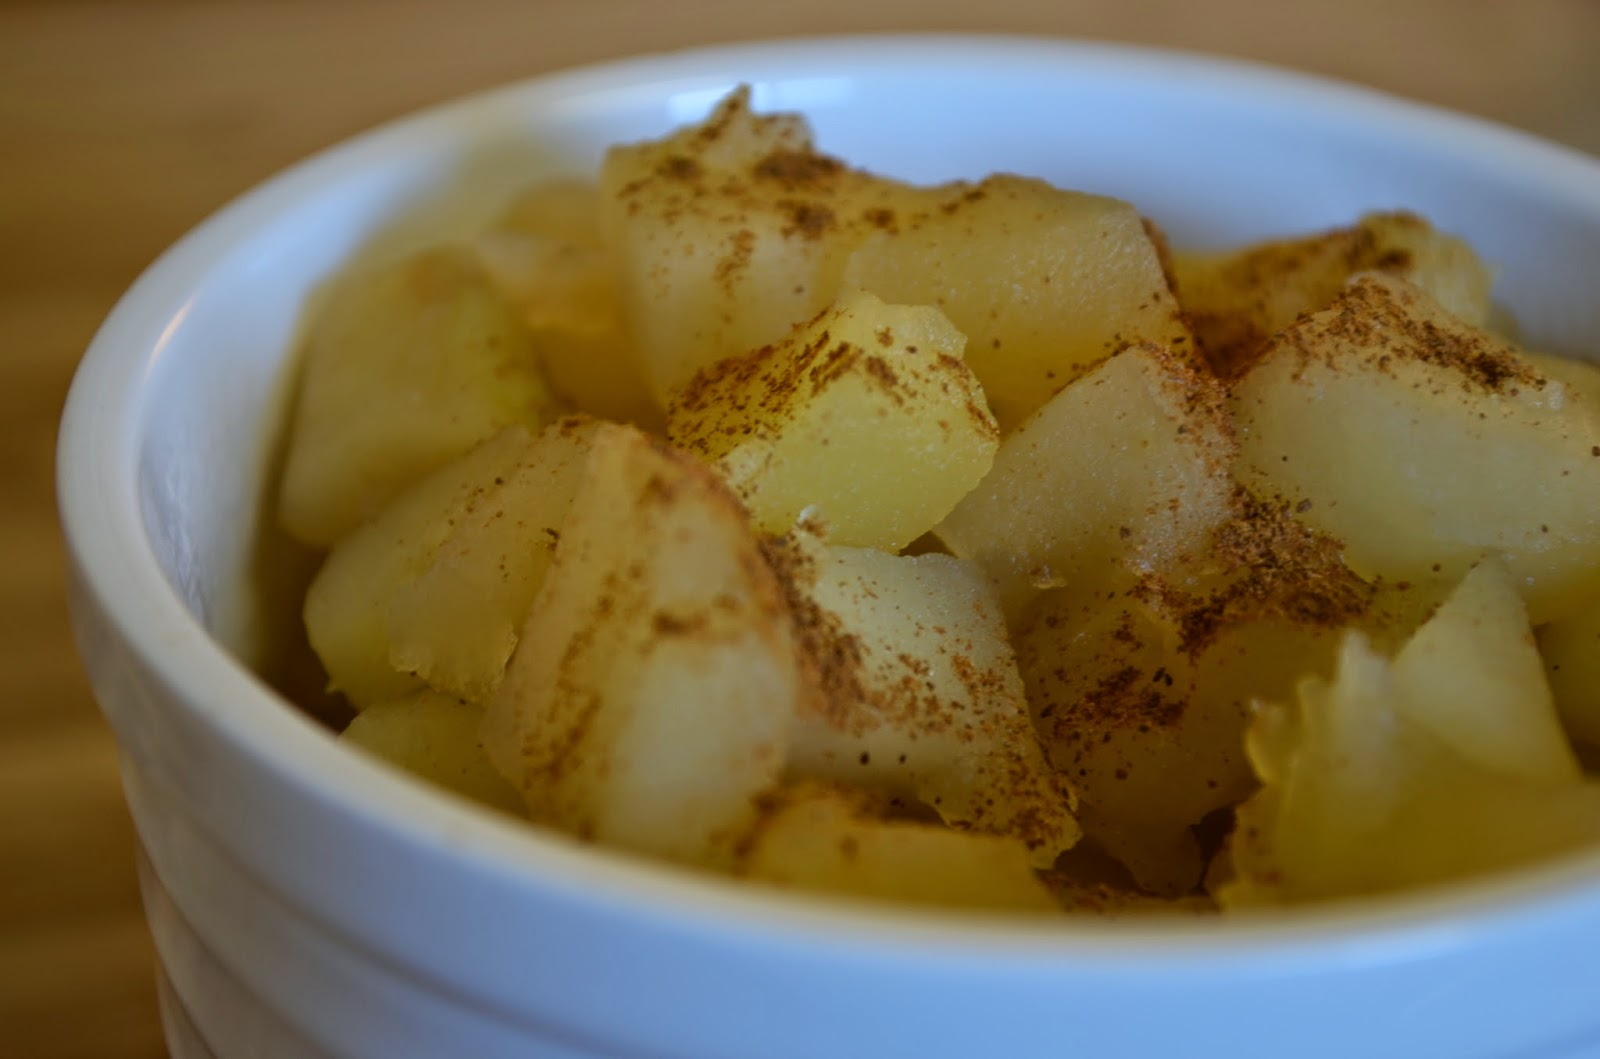 Stewed apples sprinked with cinnamon